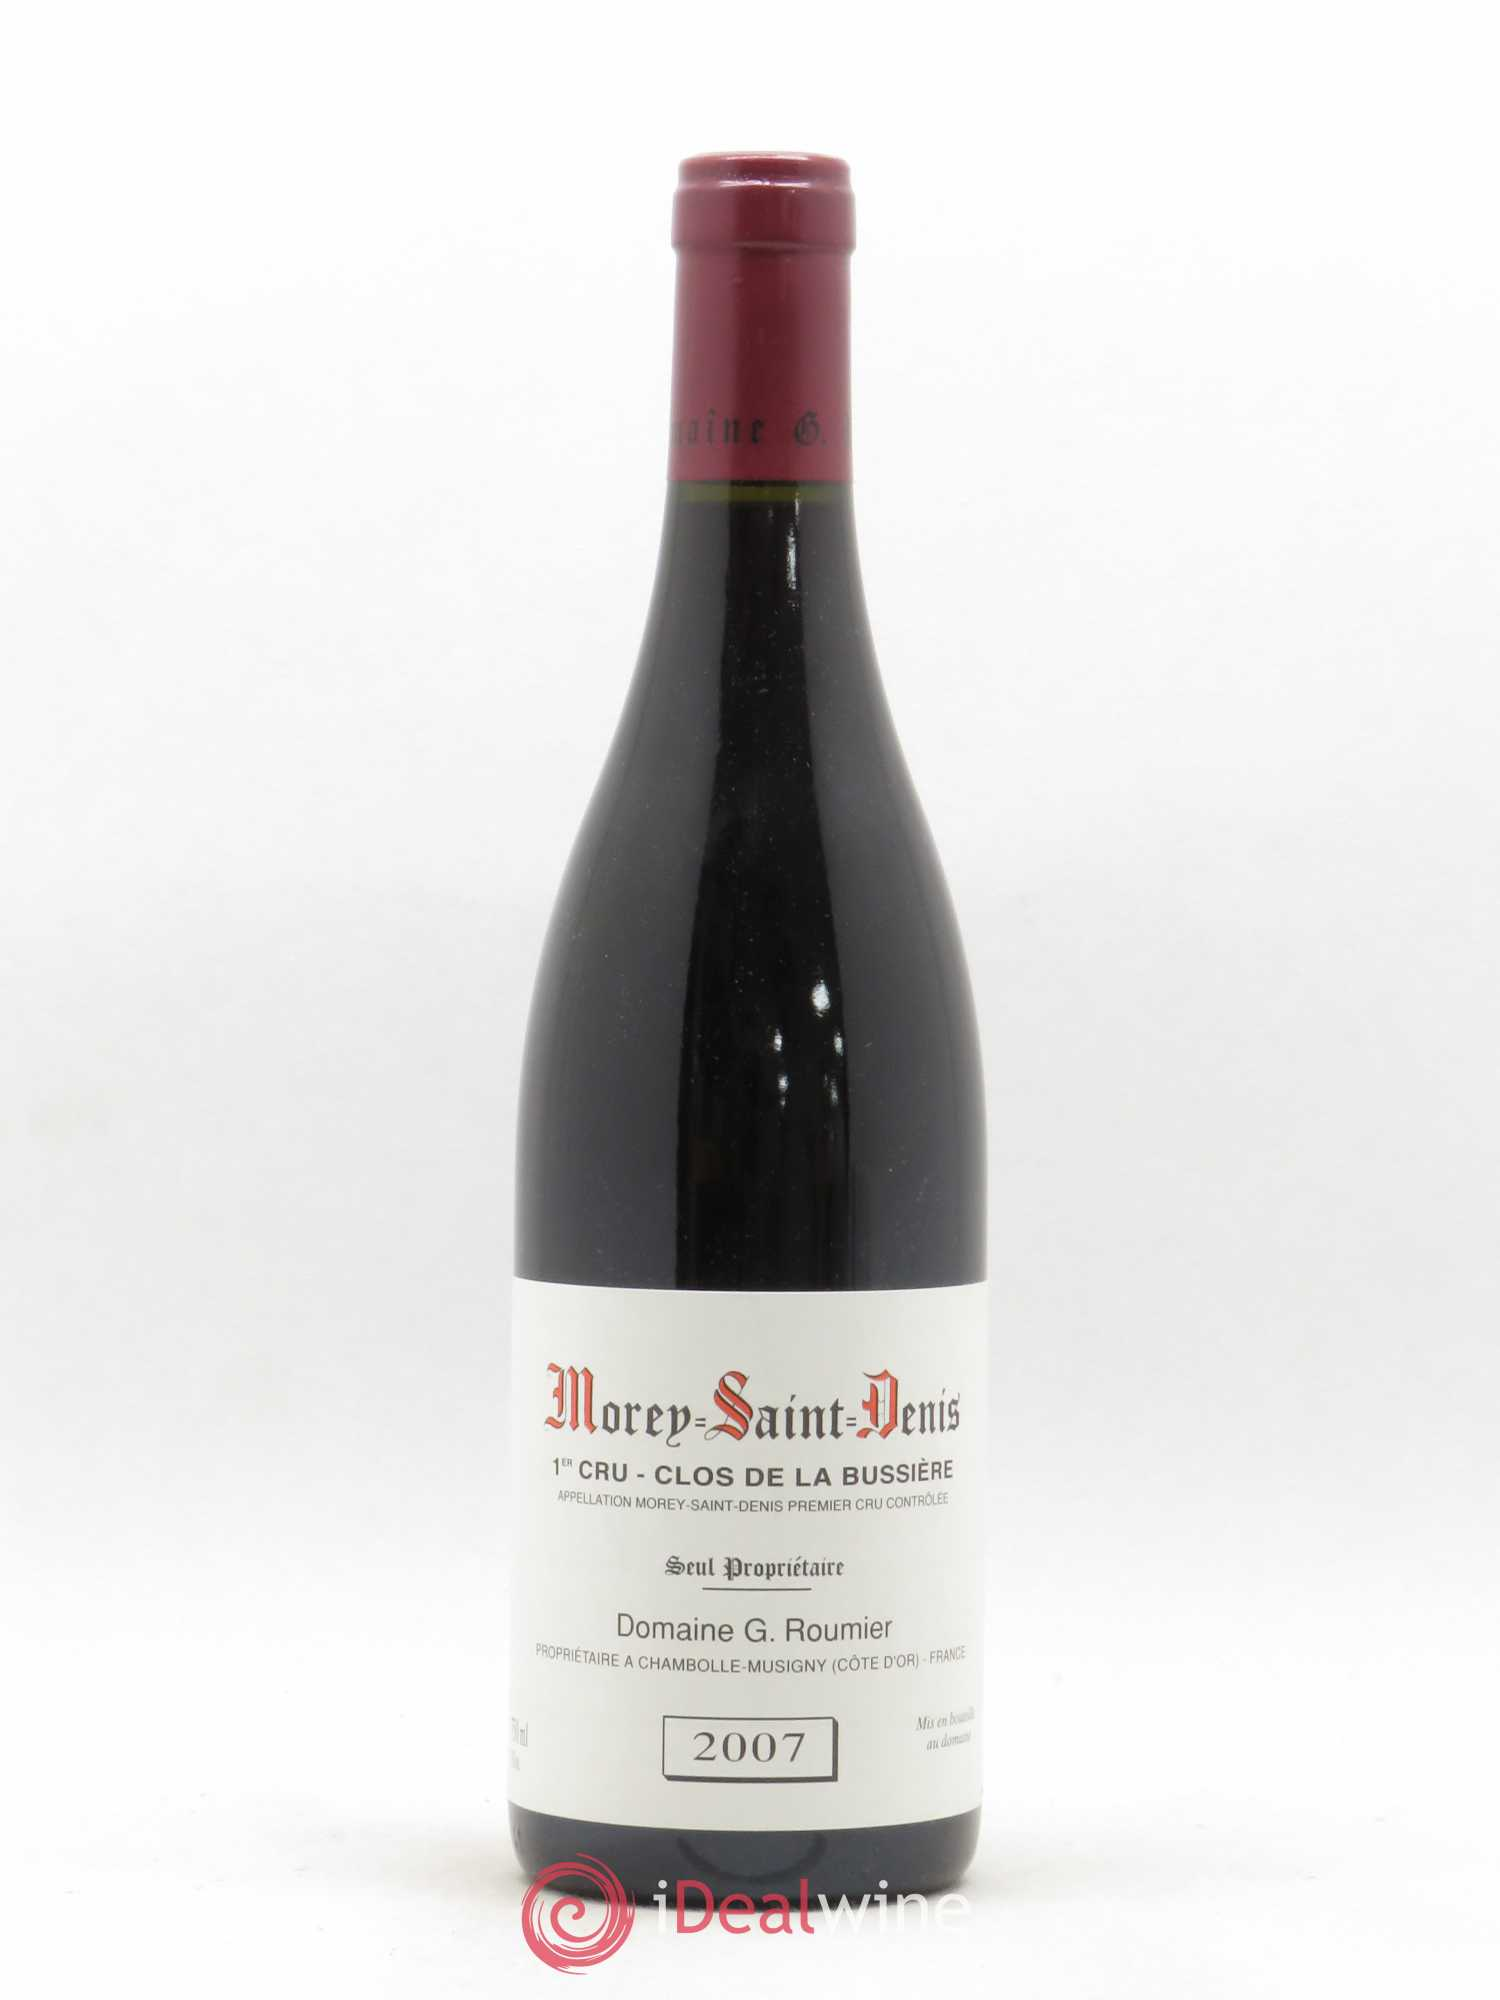 Morey Saint-Denis 1er Cru Clos de la Bussière Georges Roumier (Domaine)  2007 - Lot of 1 Bottle